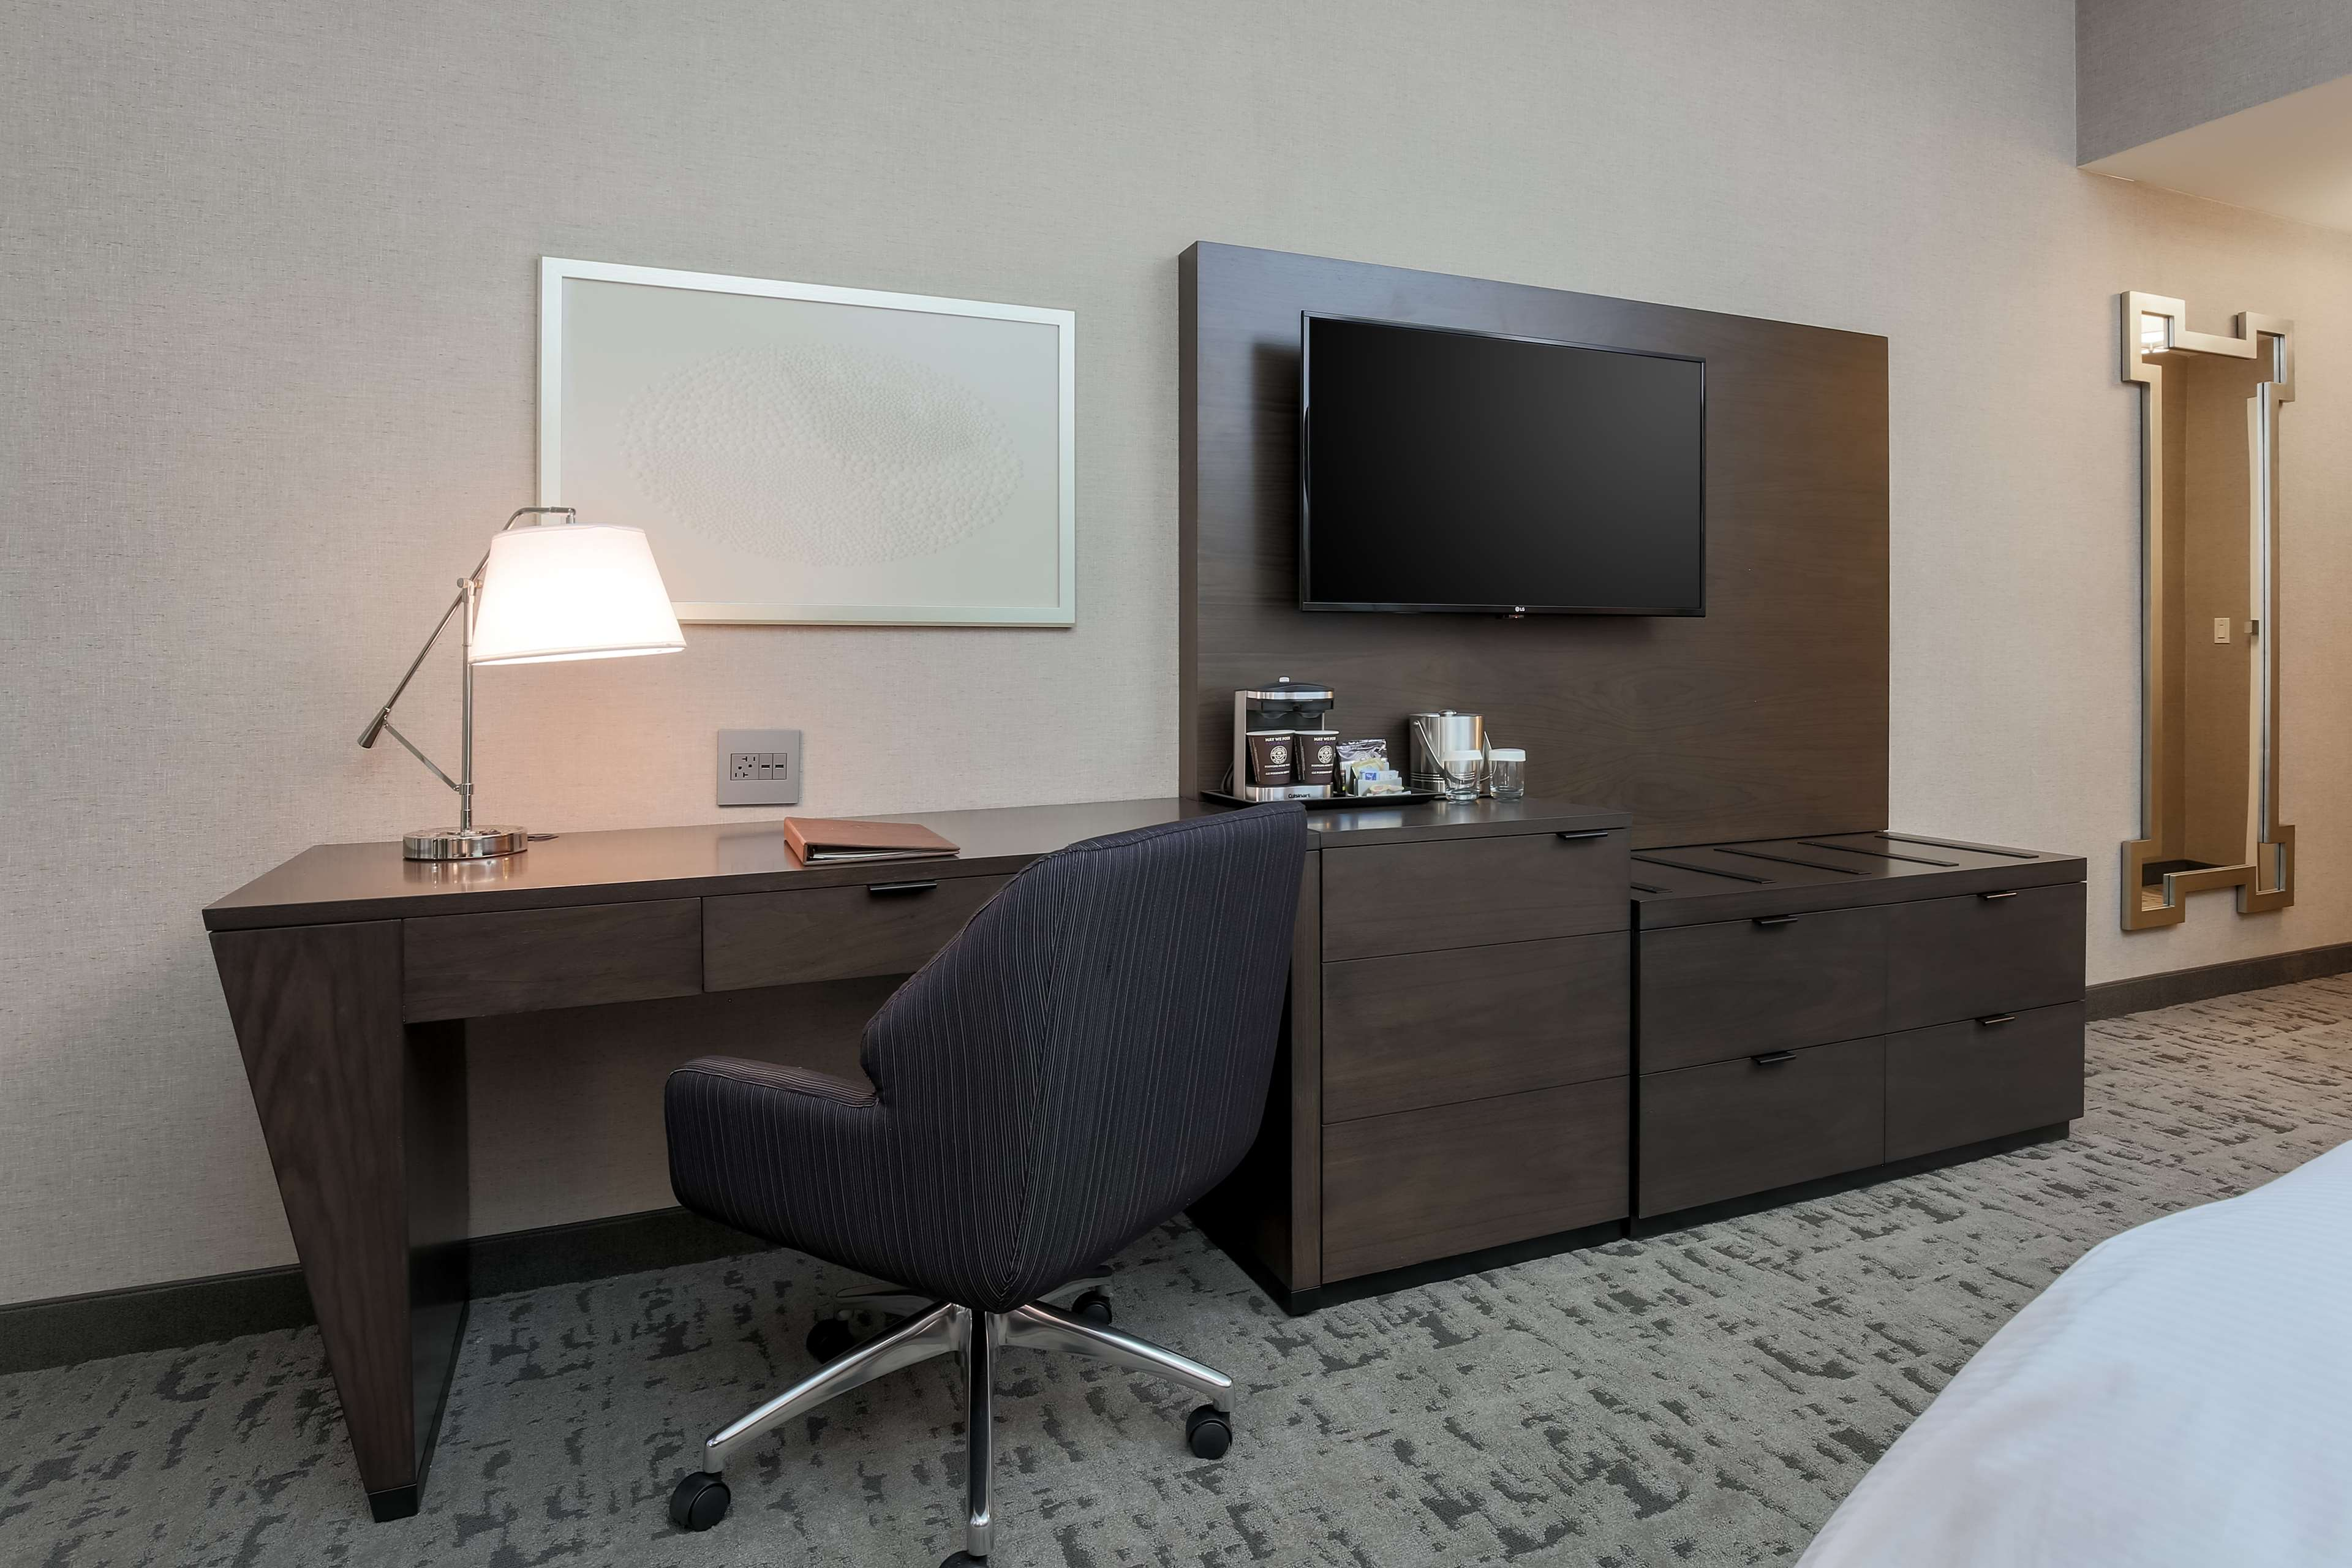 DoubleTree by Hilton Evansville image 33